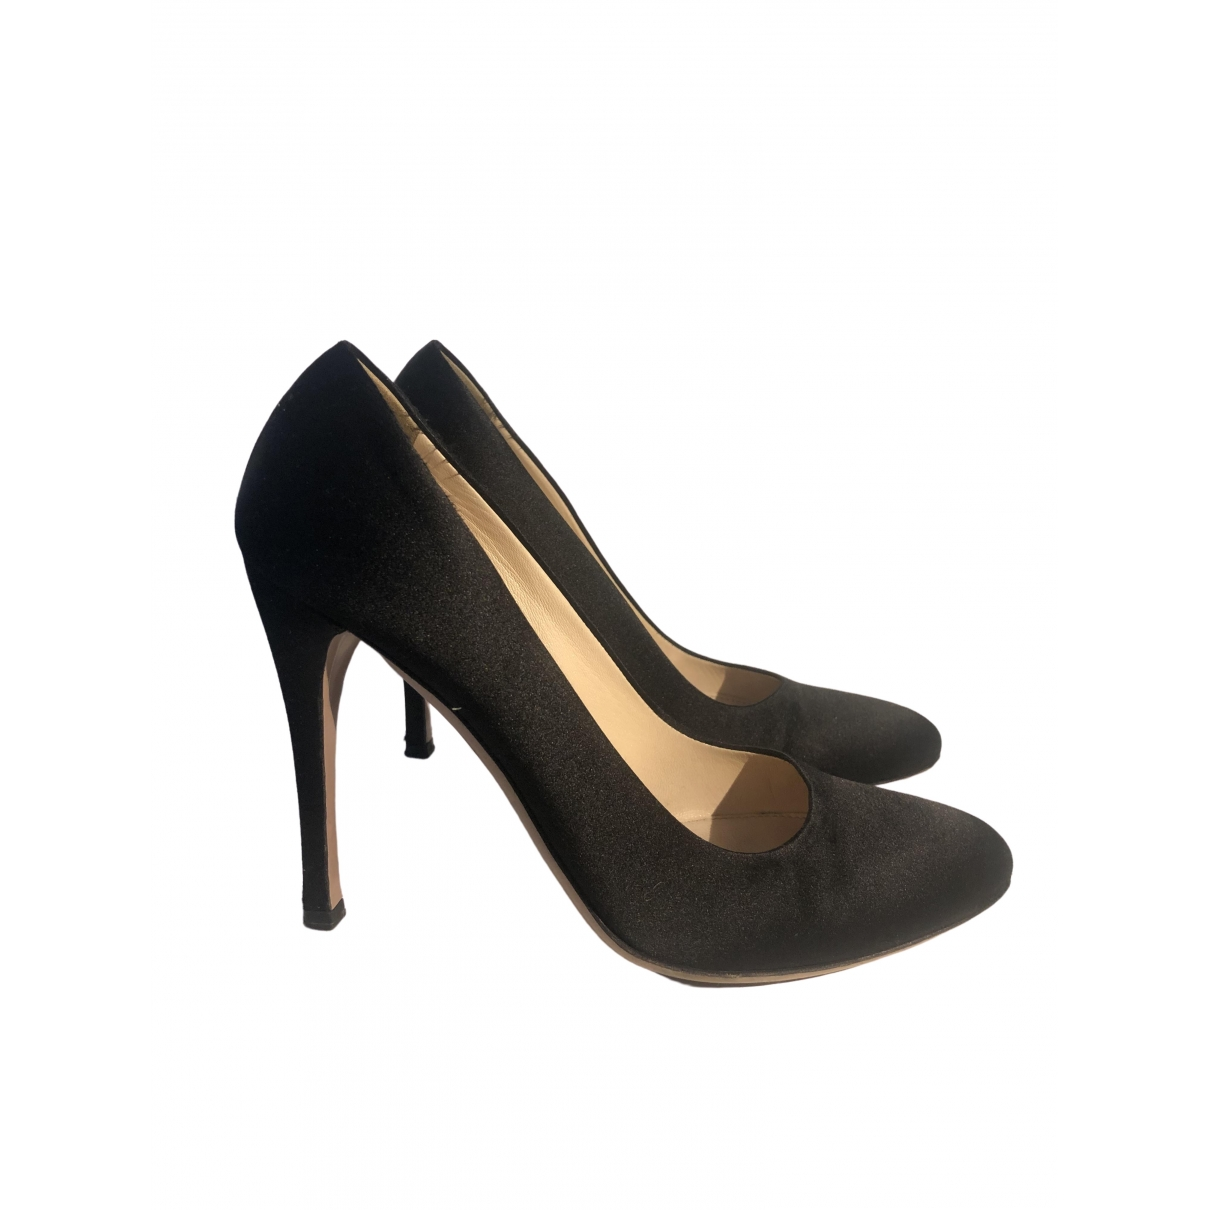 Prada \N Black Cloth Heels for Women 36.5 EU